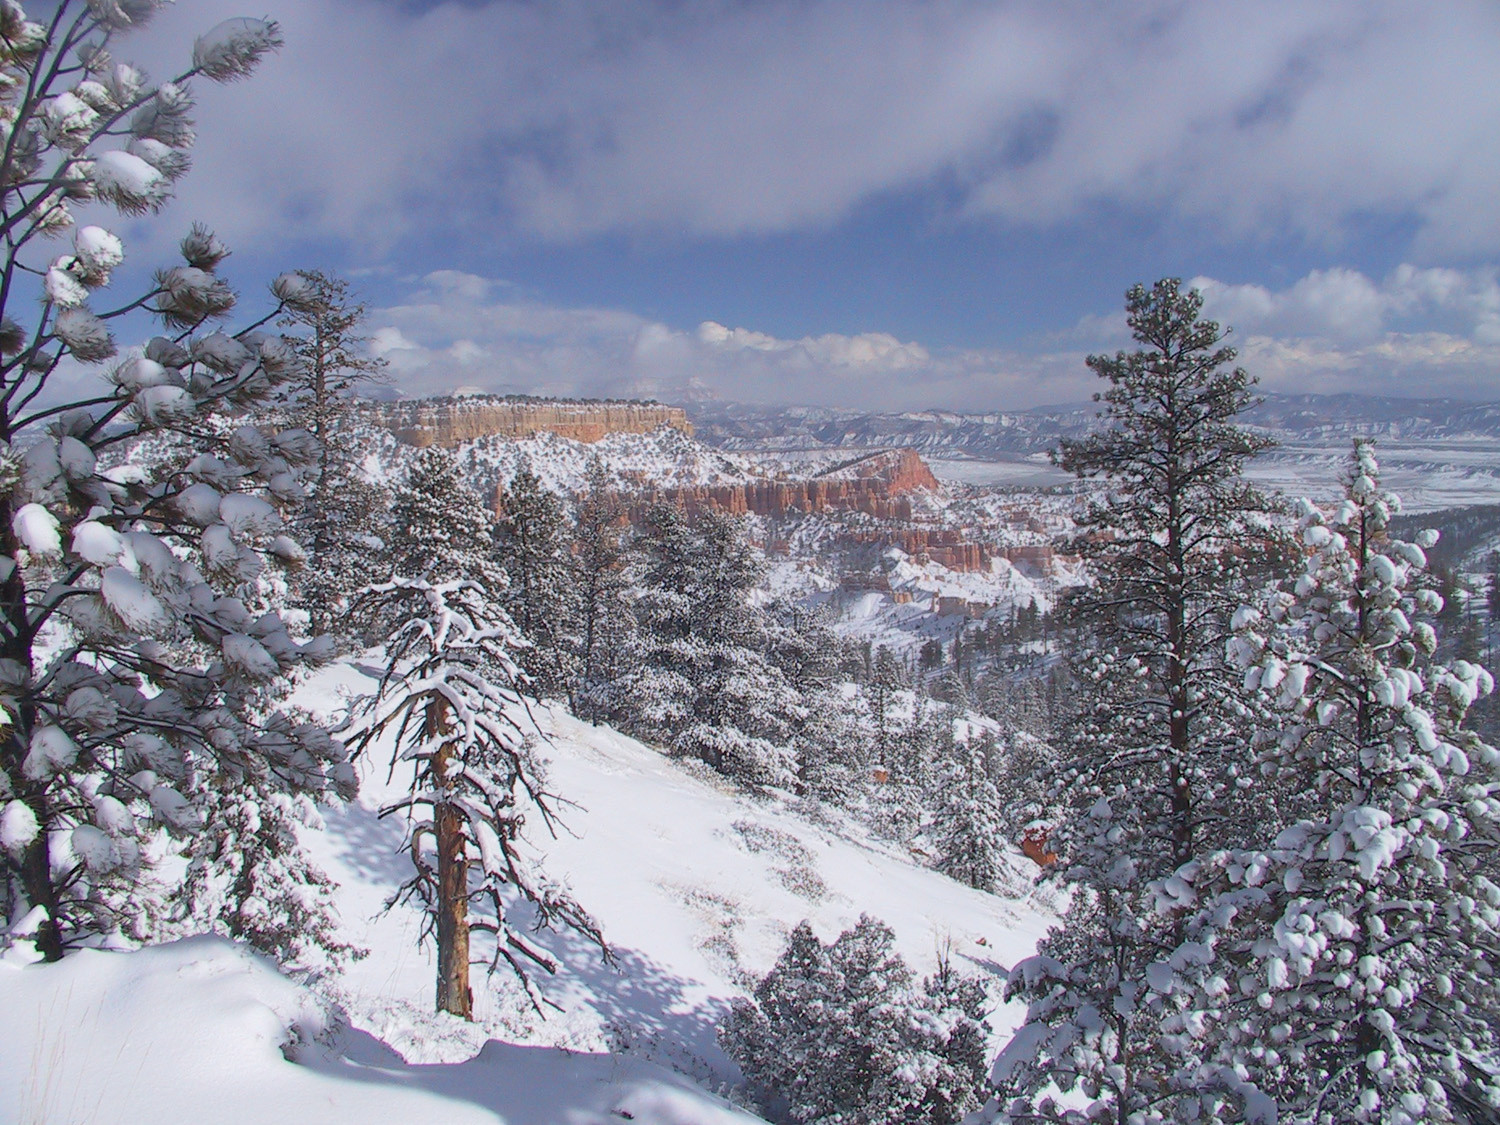 A winter storm at Bryce Canyon.